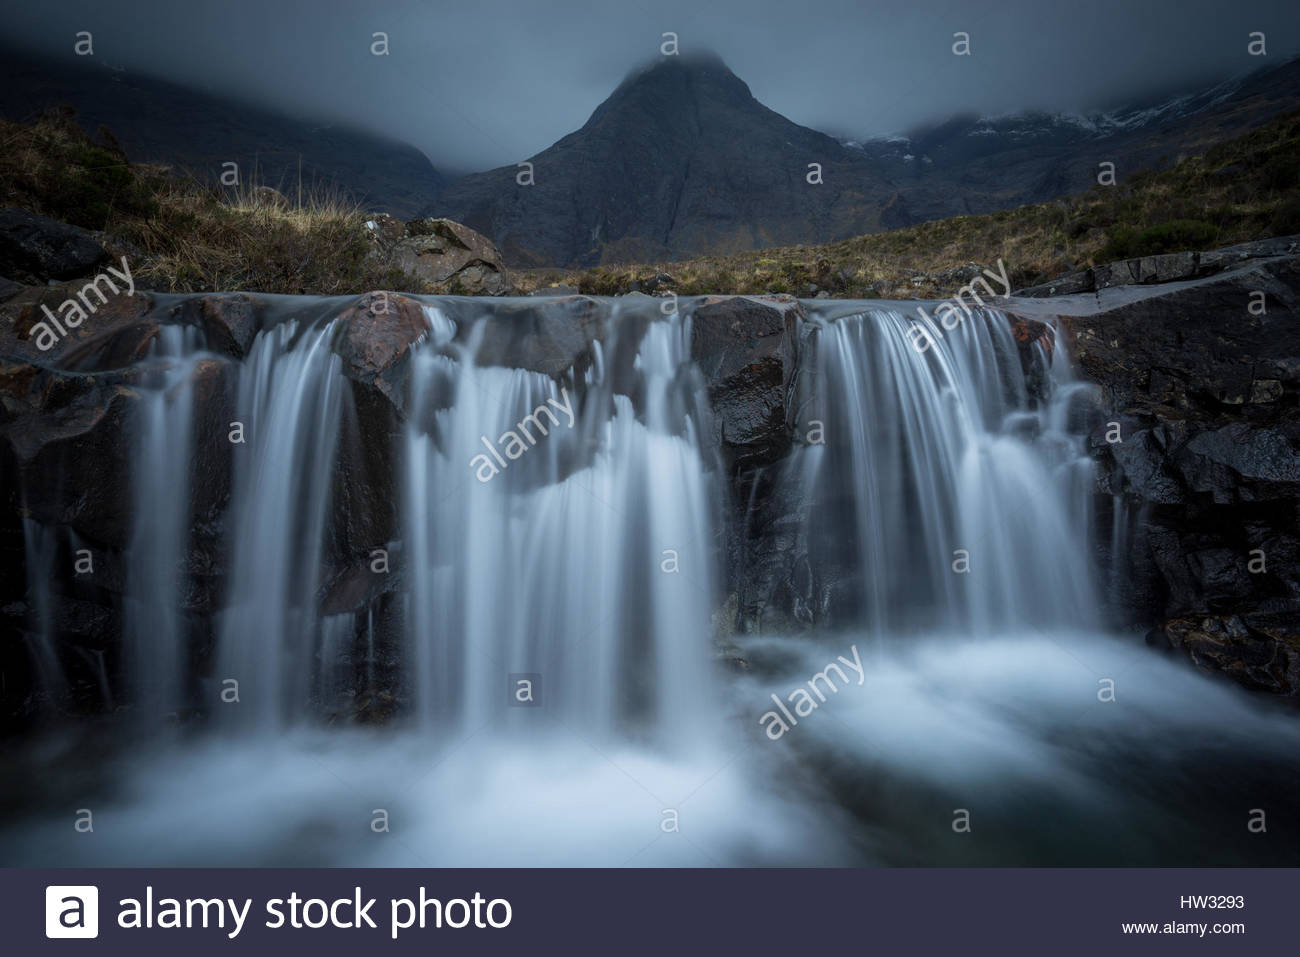 Dramatic conditions at the Fairy Pools on the Isle of Skye. - Stock Image